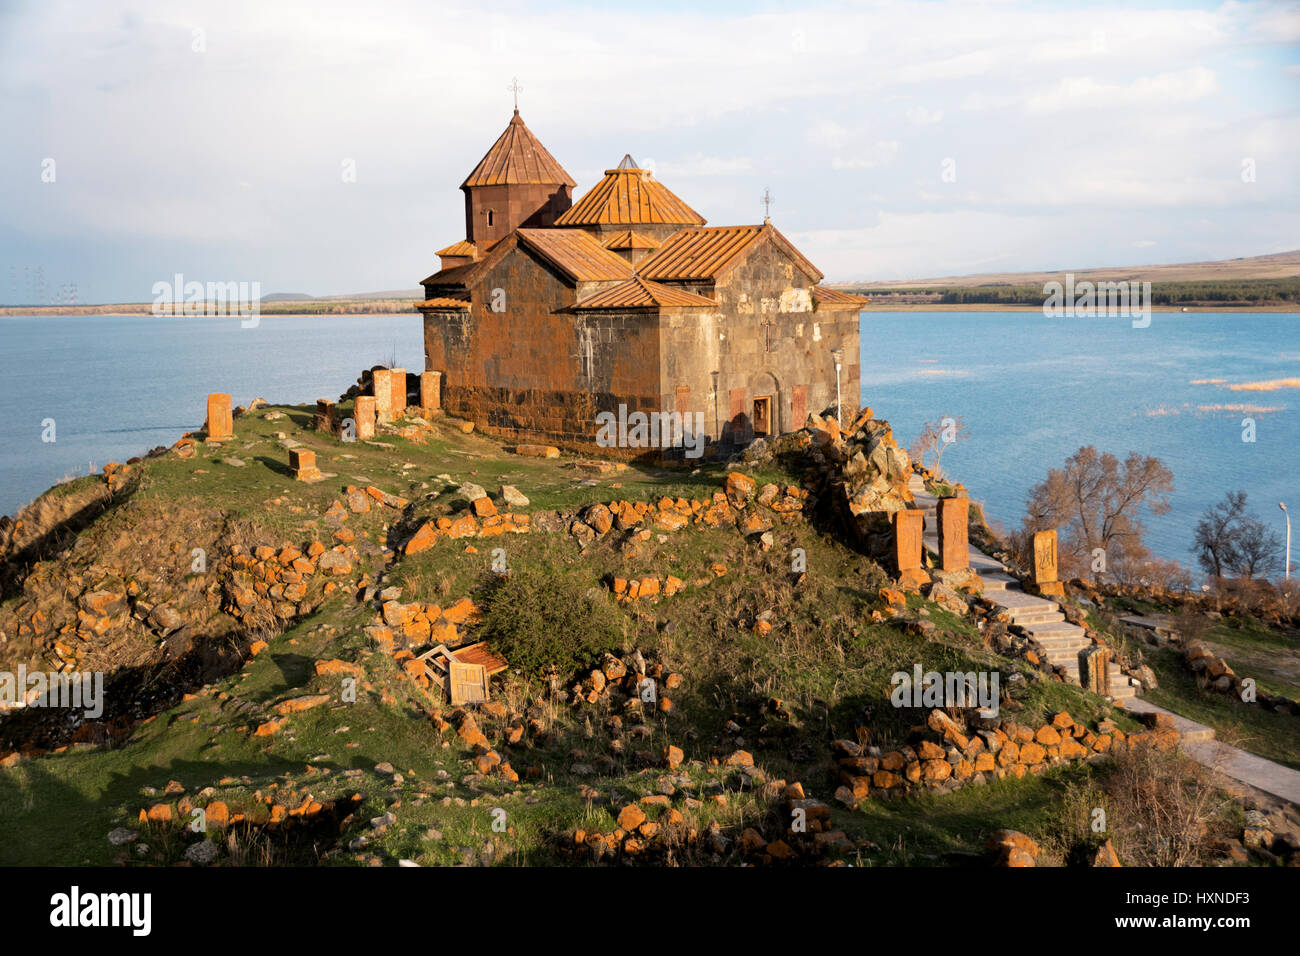 Hayravank Monastery on shore of Lake Sevan in Armenia. - Stock Image